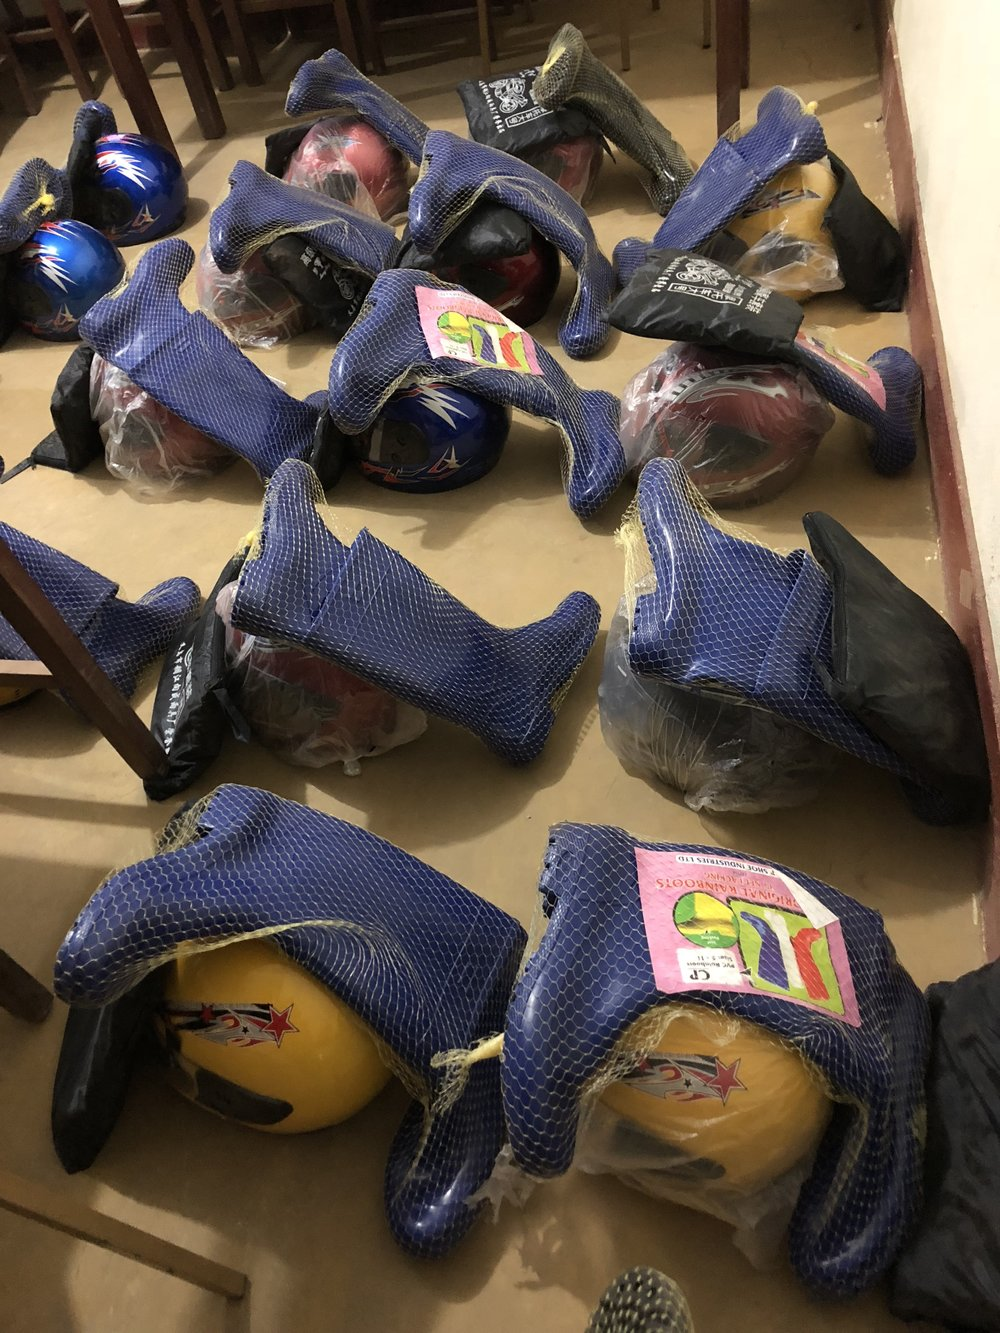 Bundles of boots, motor cycle helmets and rain jackets for our survey team. Each person  takes a bundle, which gives them vital supplies they need during the duration of the survey work.